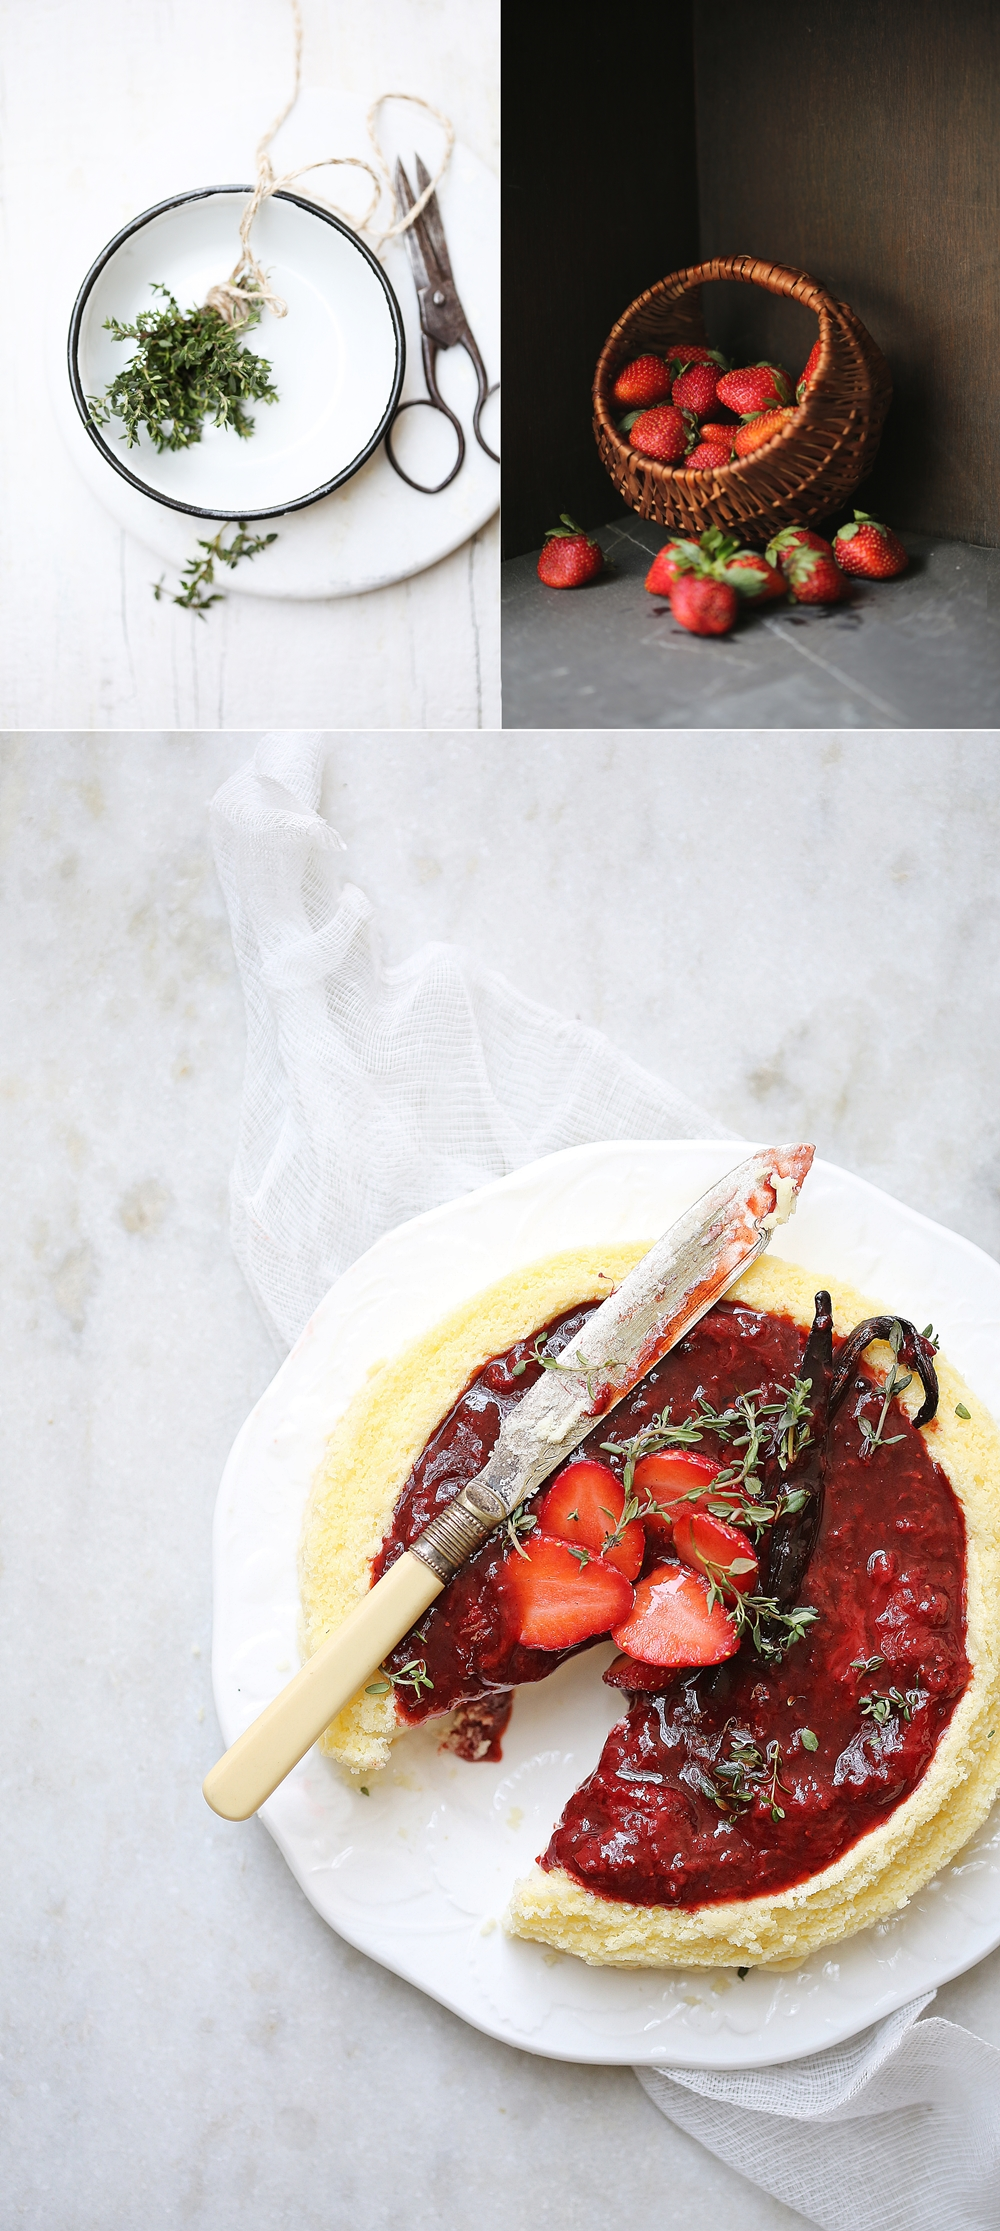 White Chocolate Cheesecake with balsamic strawberry topping